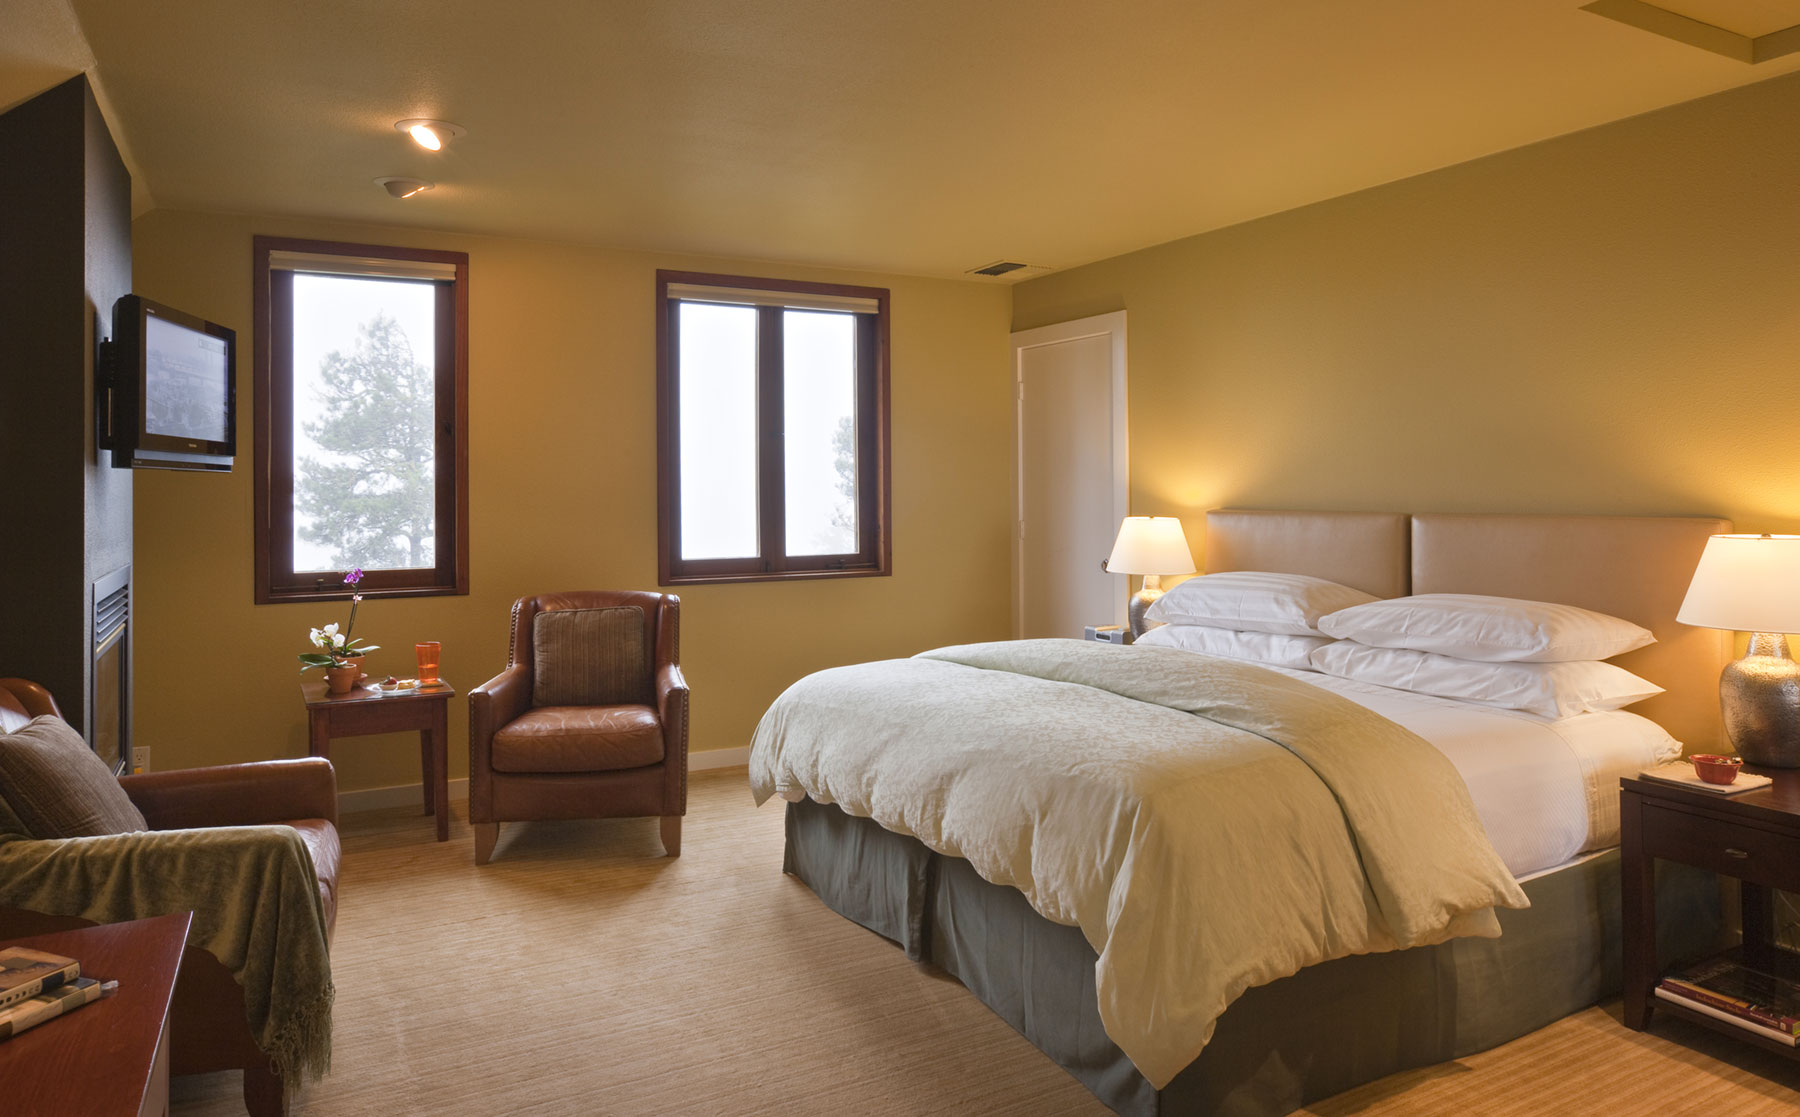 The Smuggler's Cove room has a king featherbed, leather armchairs, flat screen TV, and fireplace.